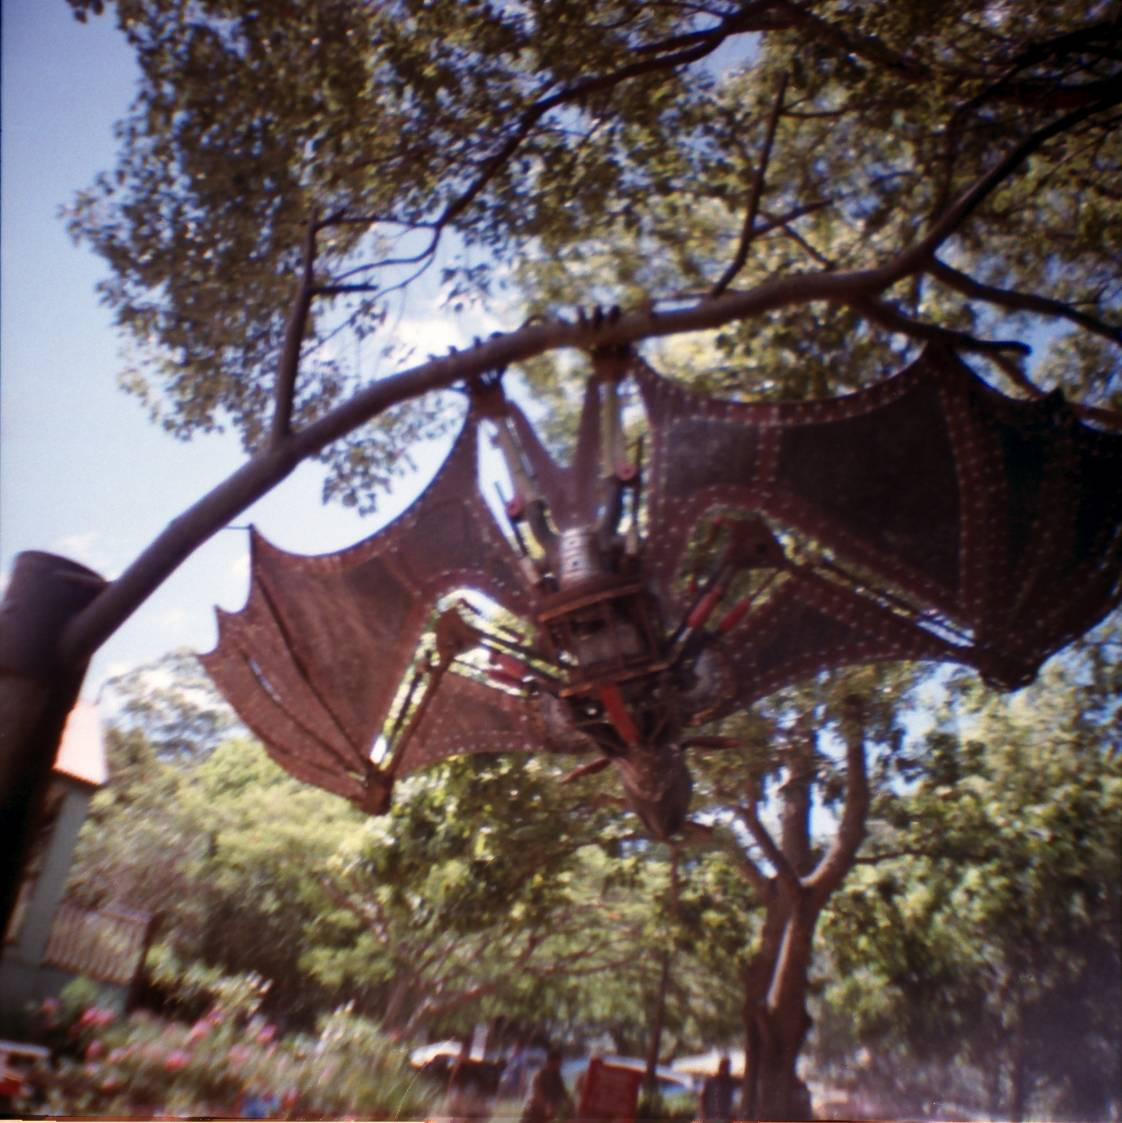 Halloween symbols what do they mean lomography credits vandal crazyj soph biocorpaavc Choice Image